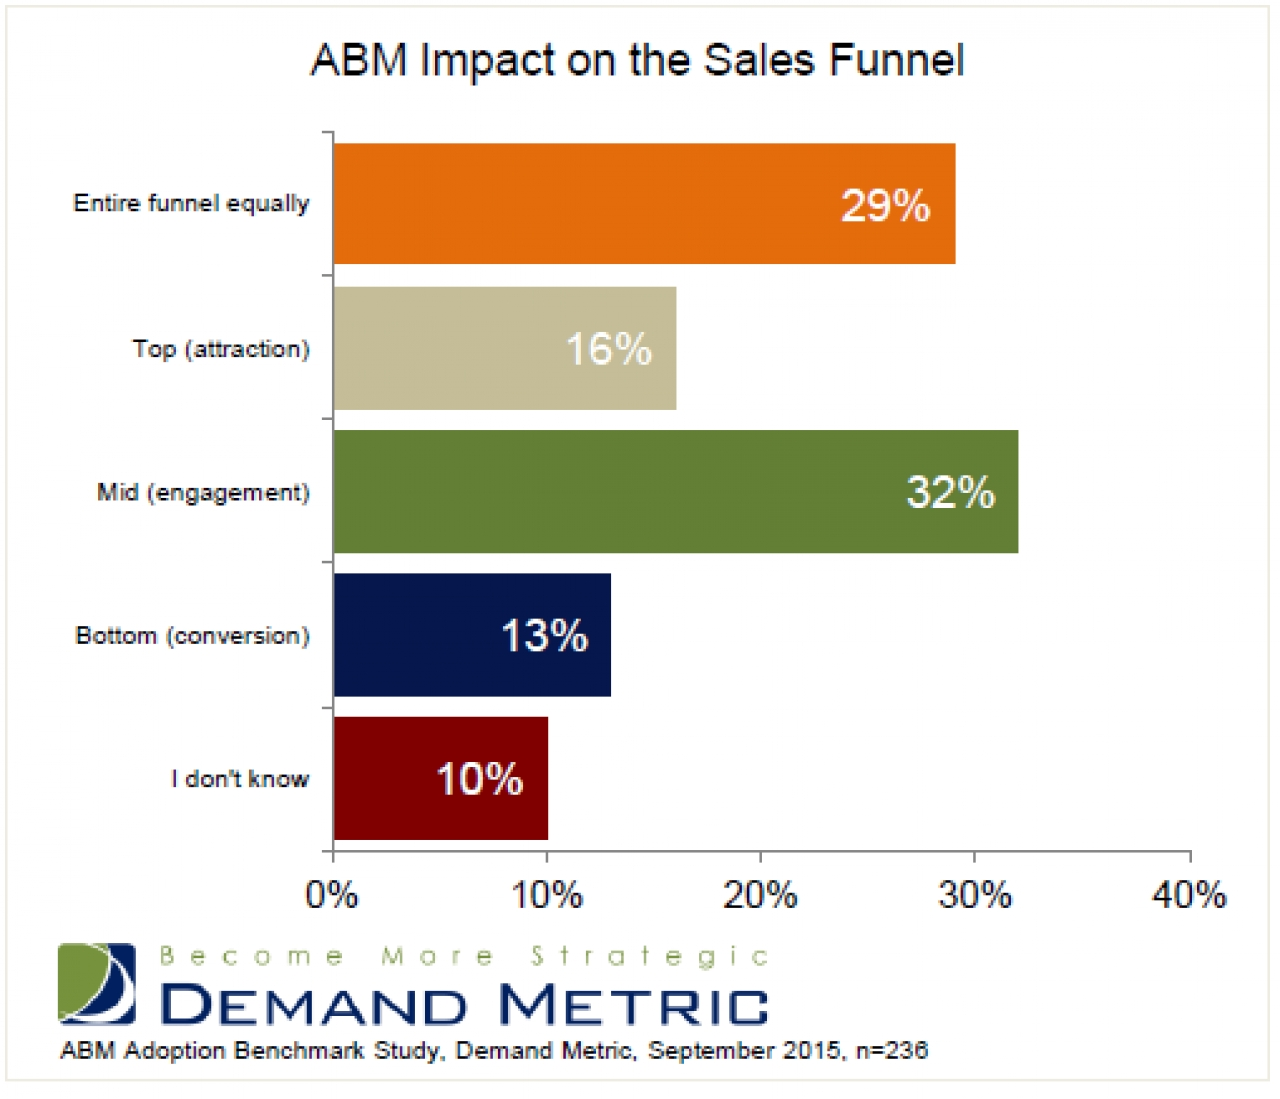 Survey: 83% Say ABM Improves Engagement With Target Accounts